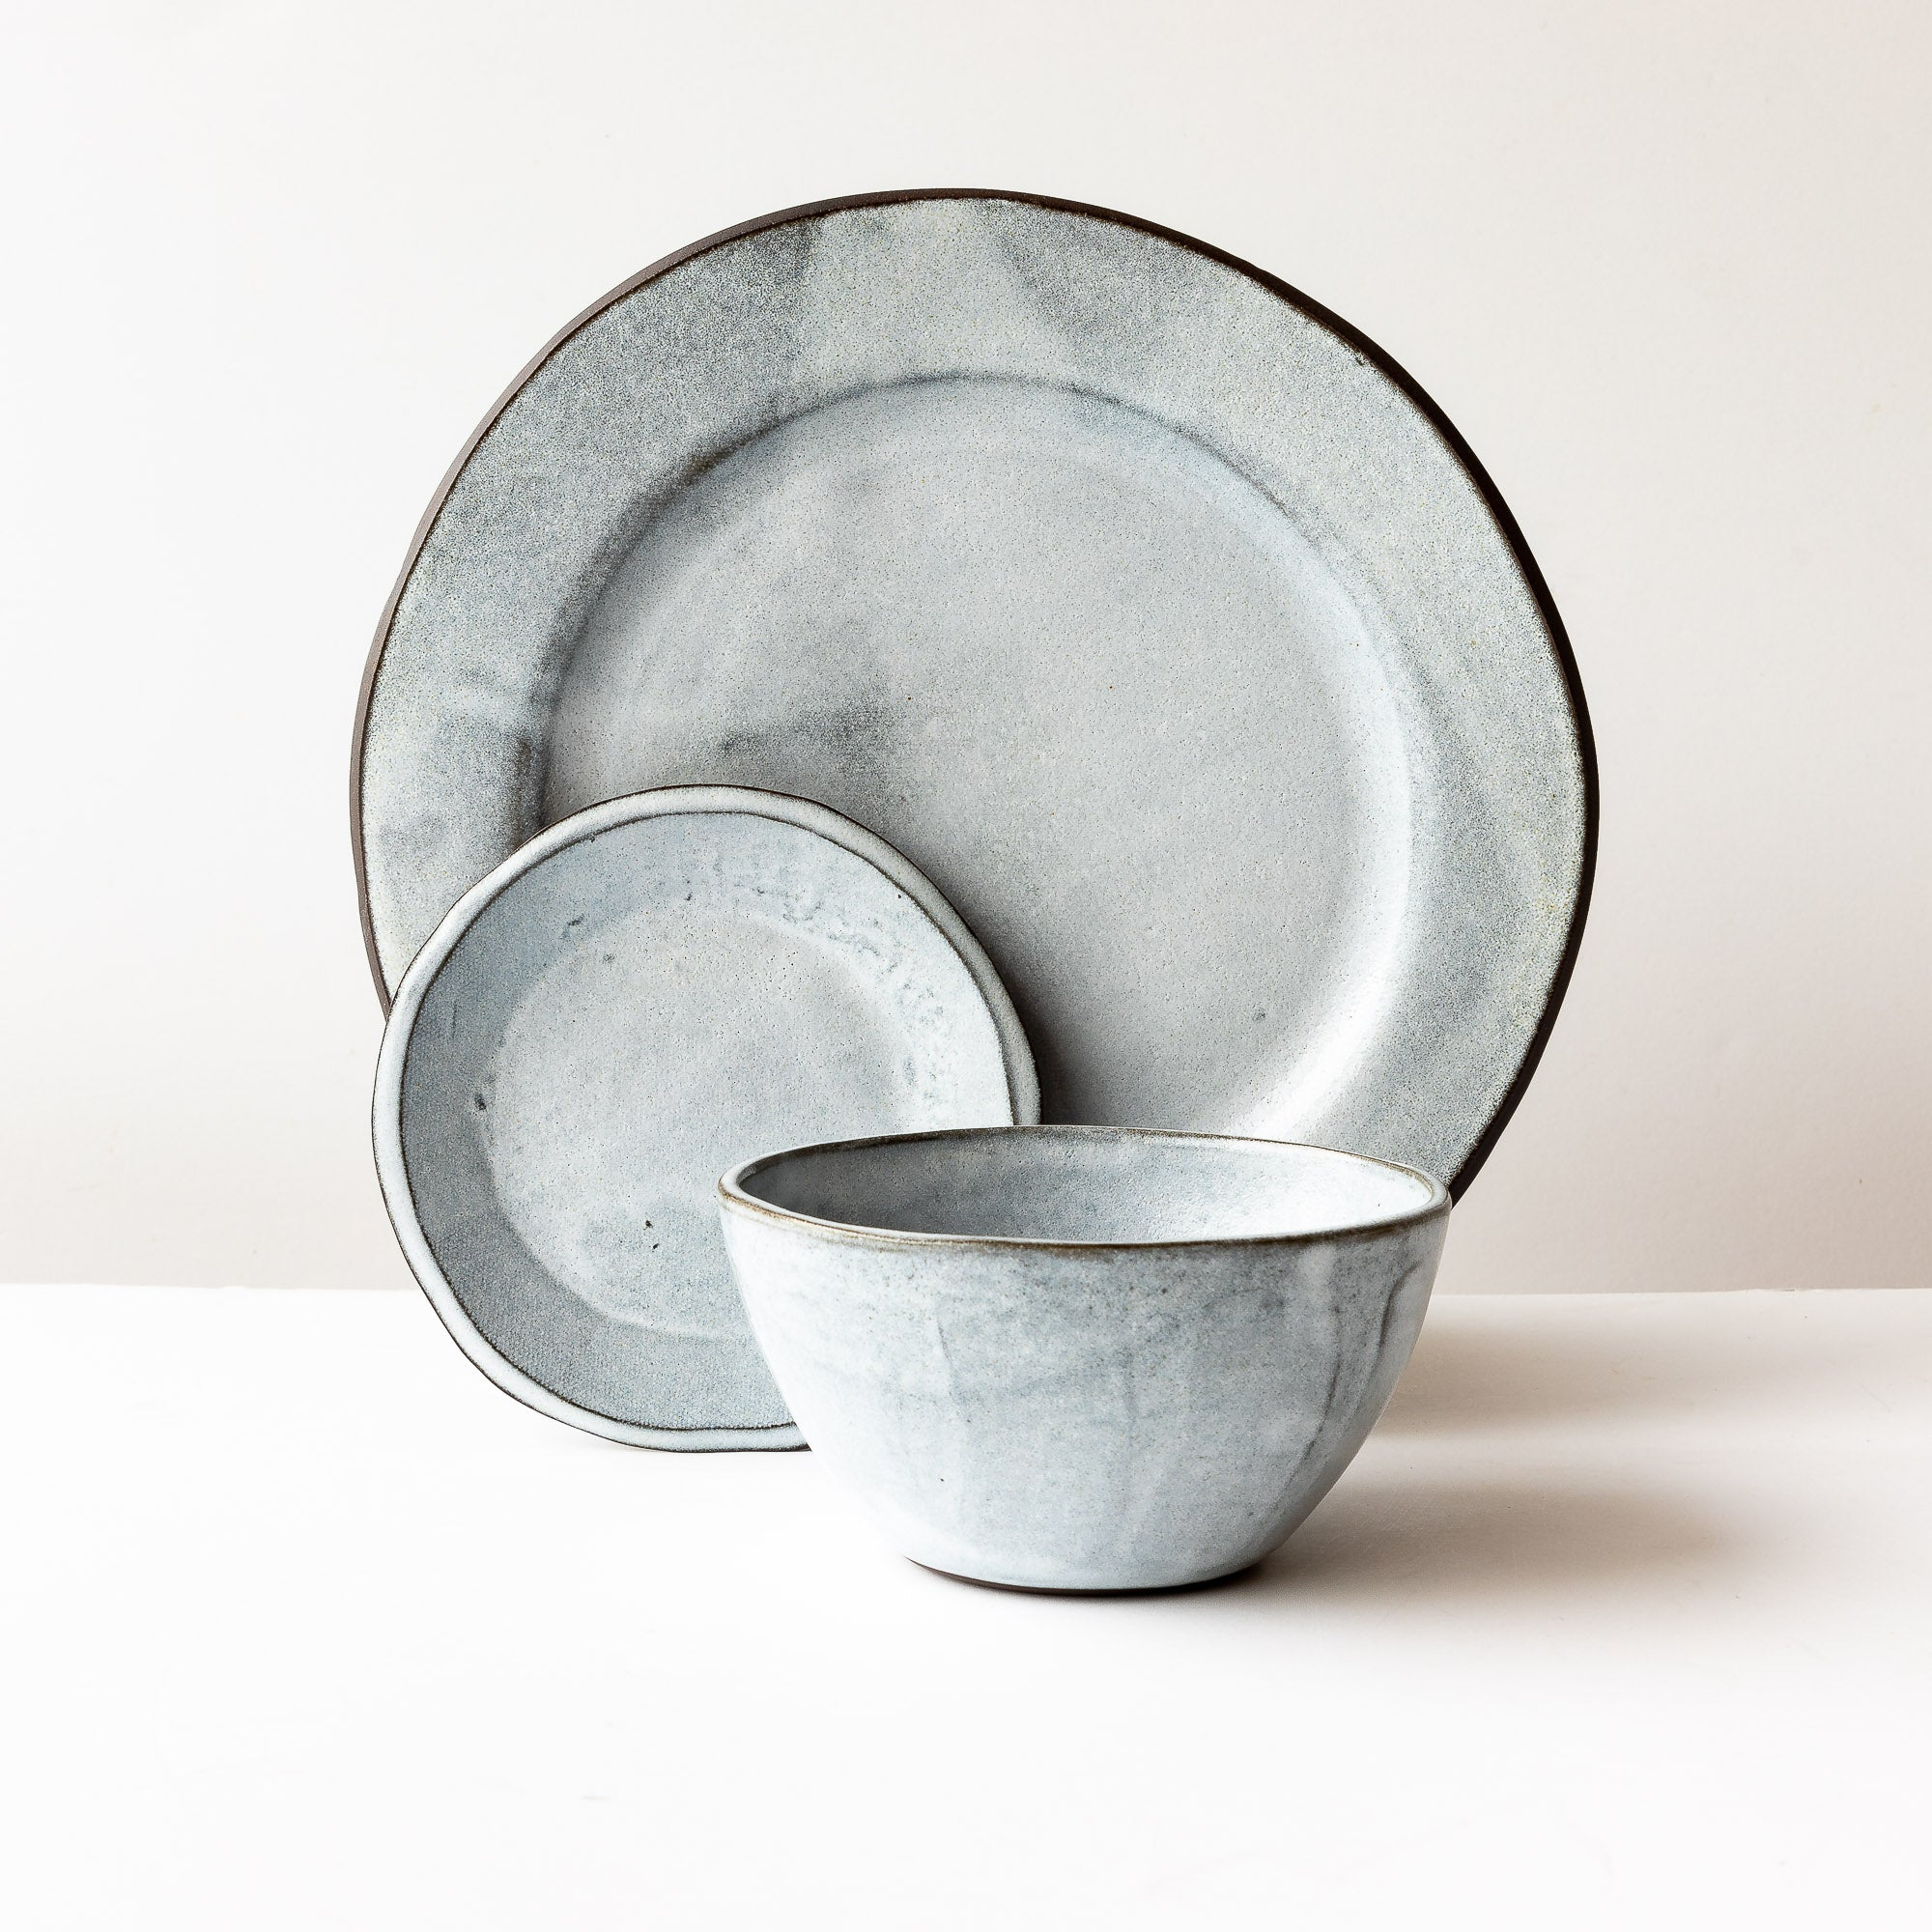 Handmade 3-Piece Dinnerware Set - In Grey & White Stoneware - Sold by Chic & Basta